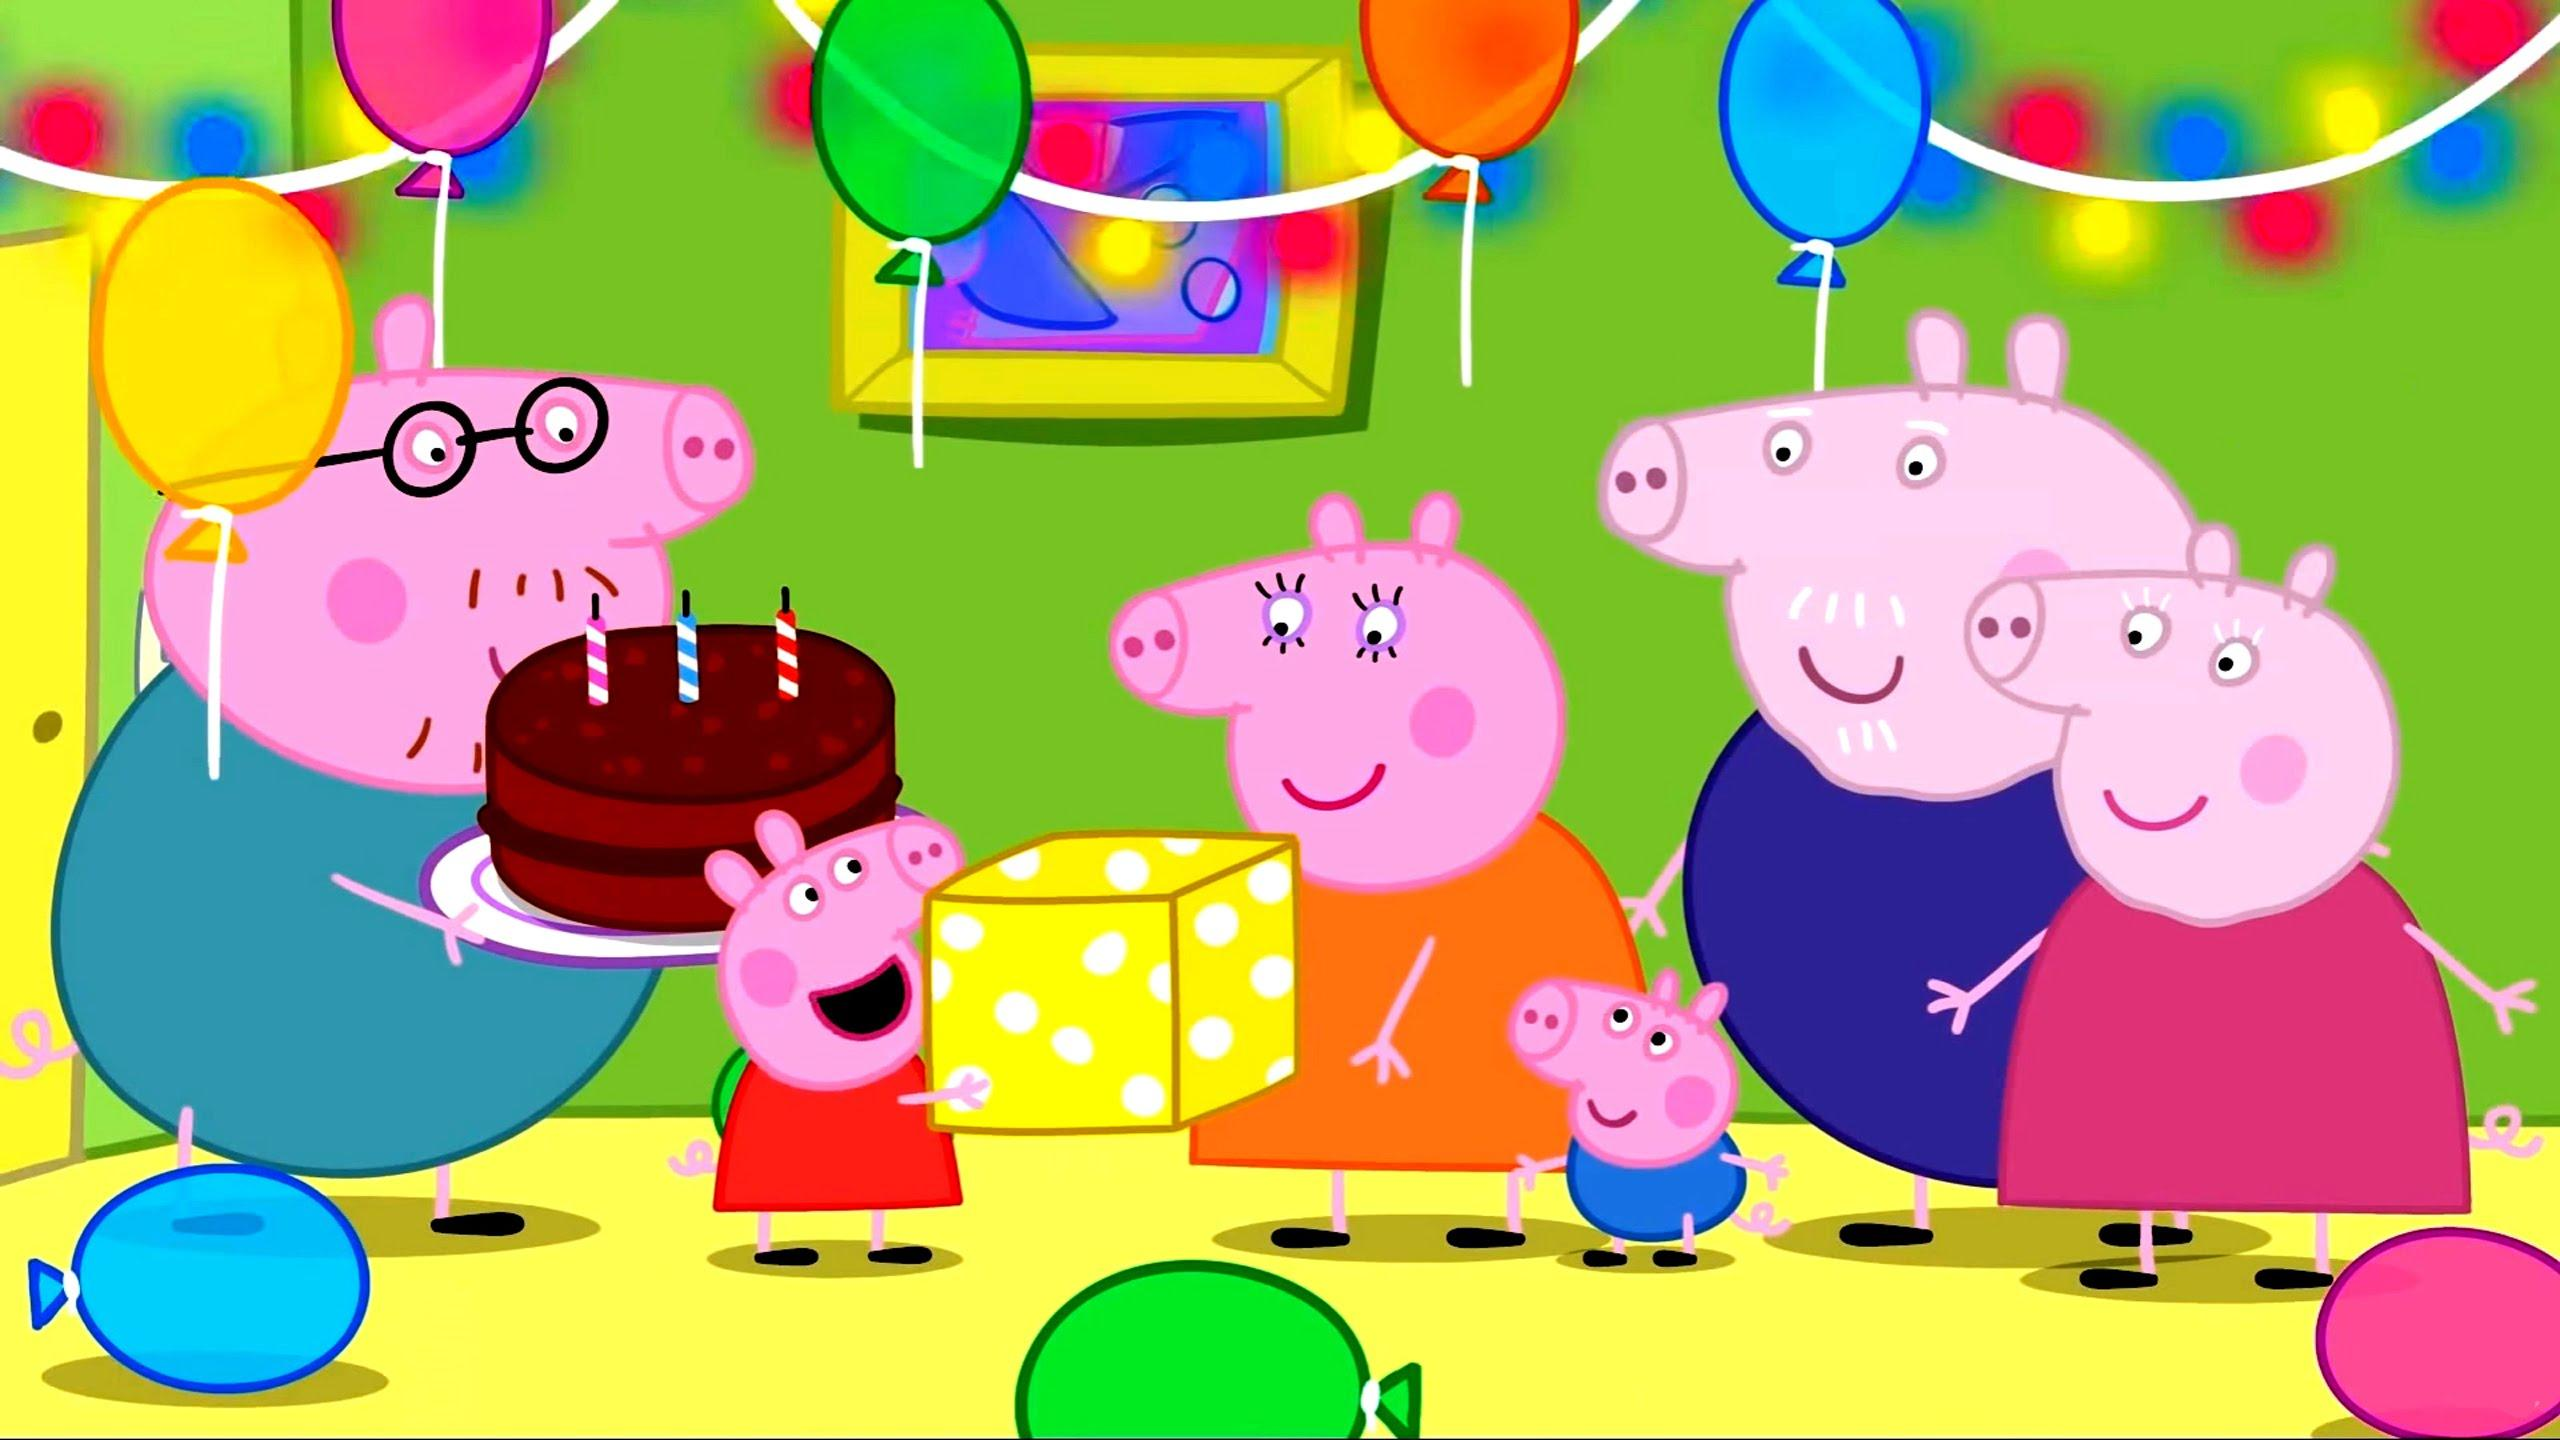 Peppa Pig Wallpapers ✓ Fitrini's Wallpapers